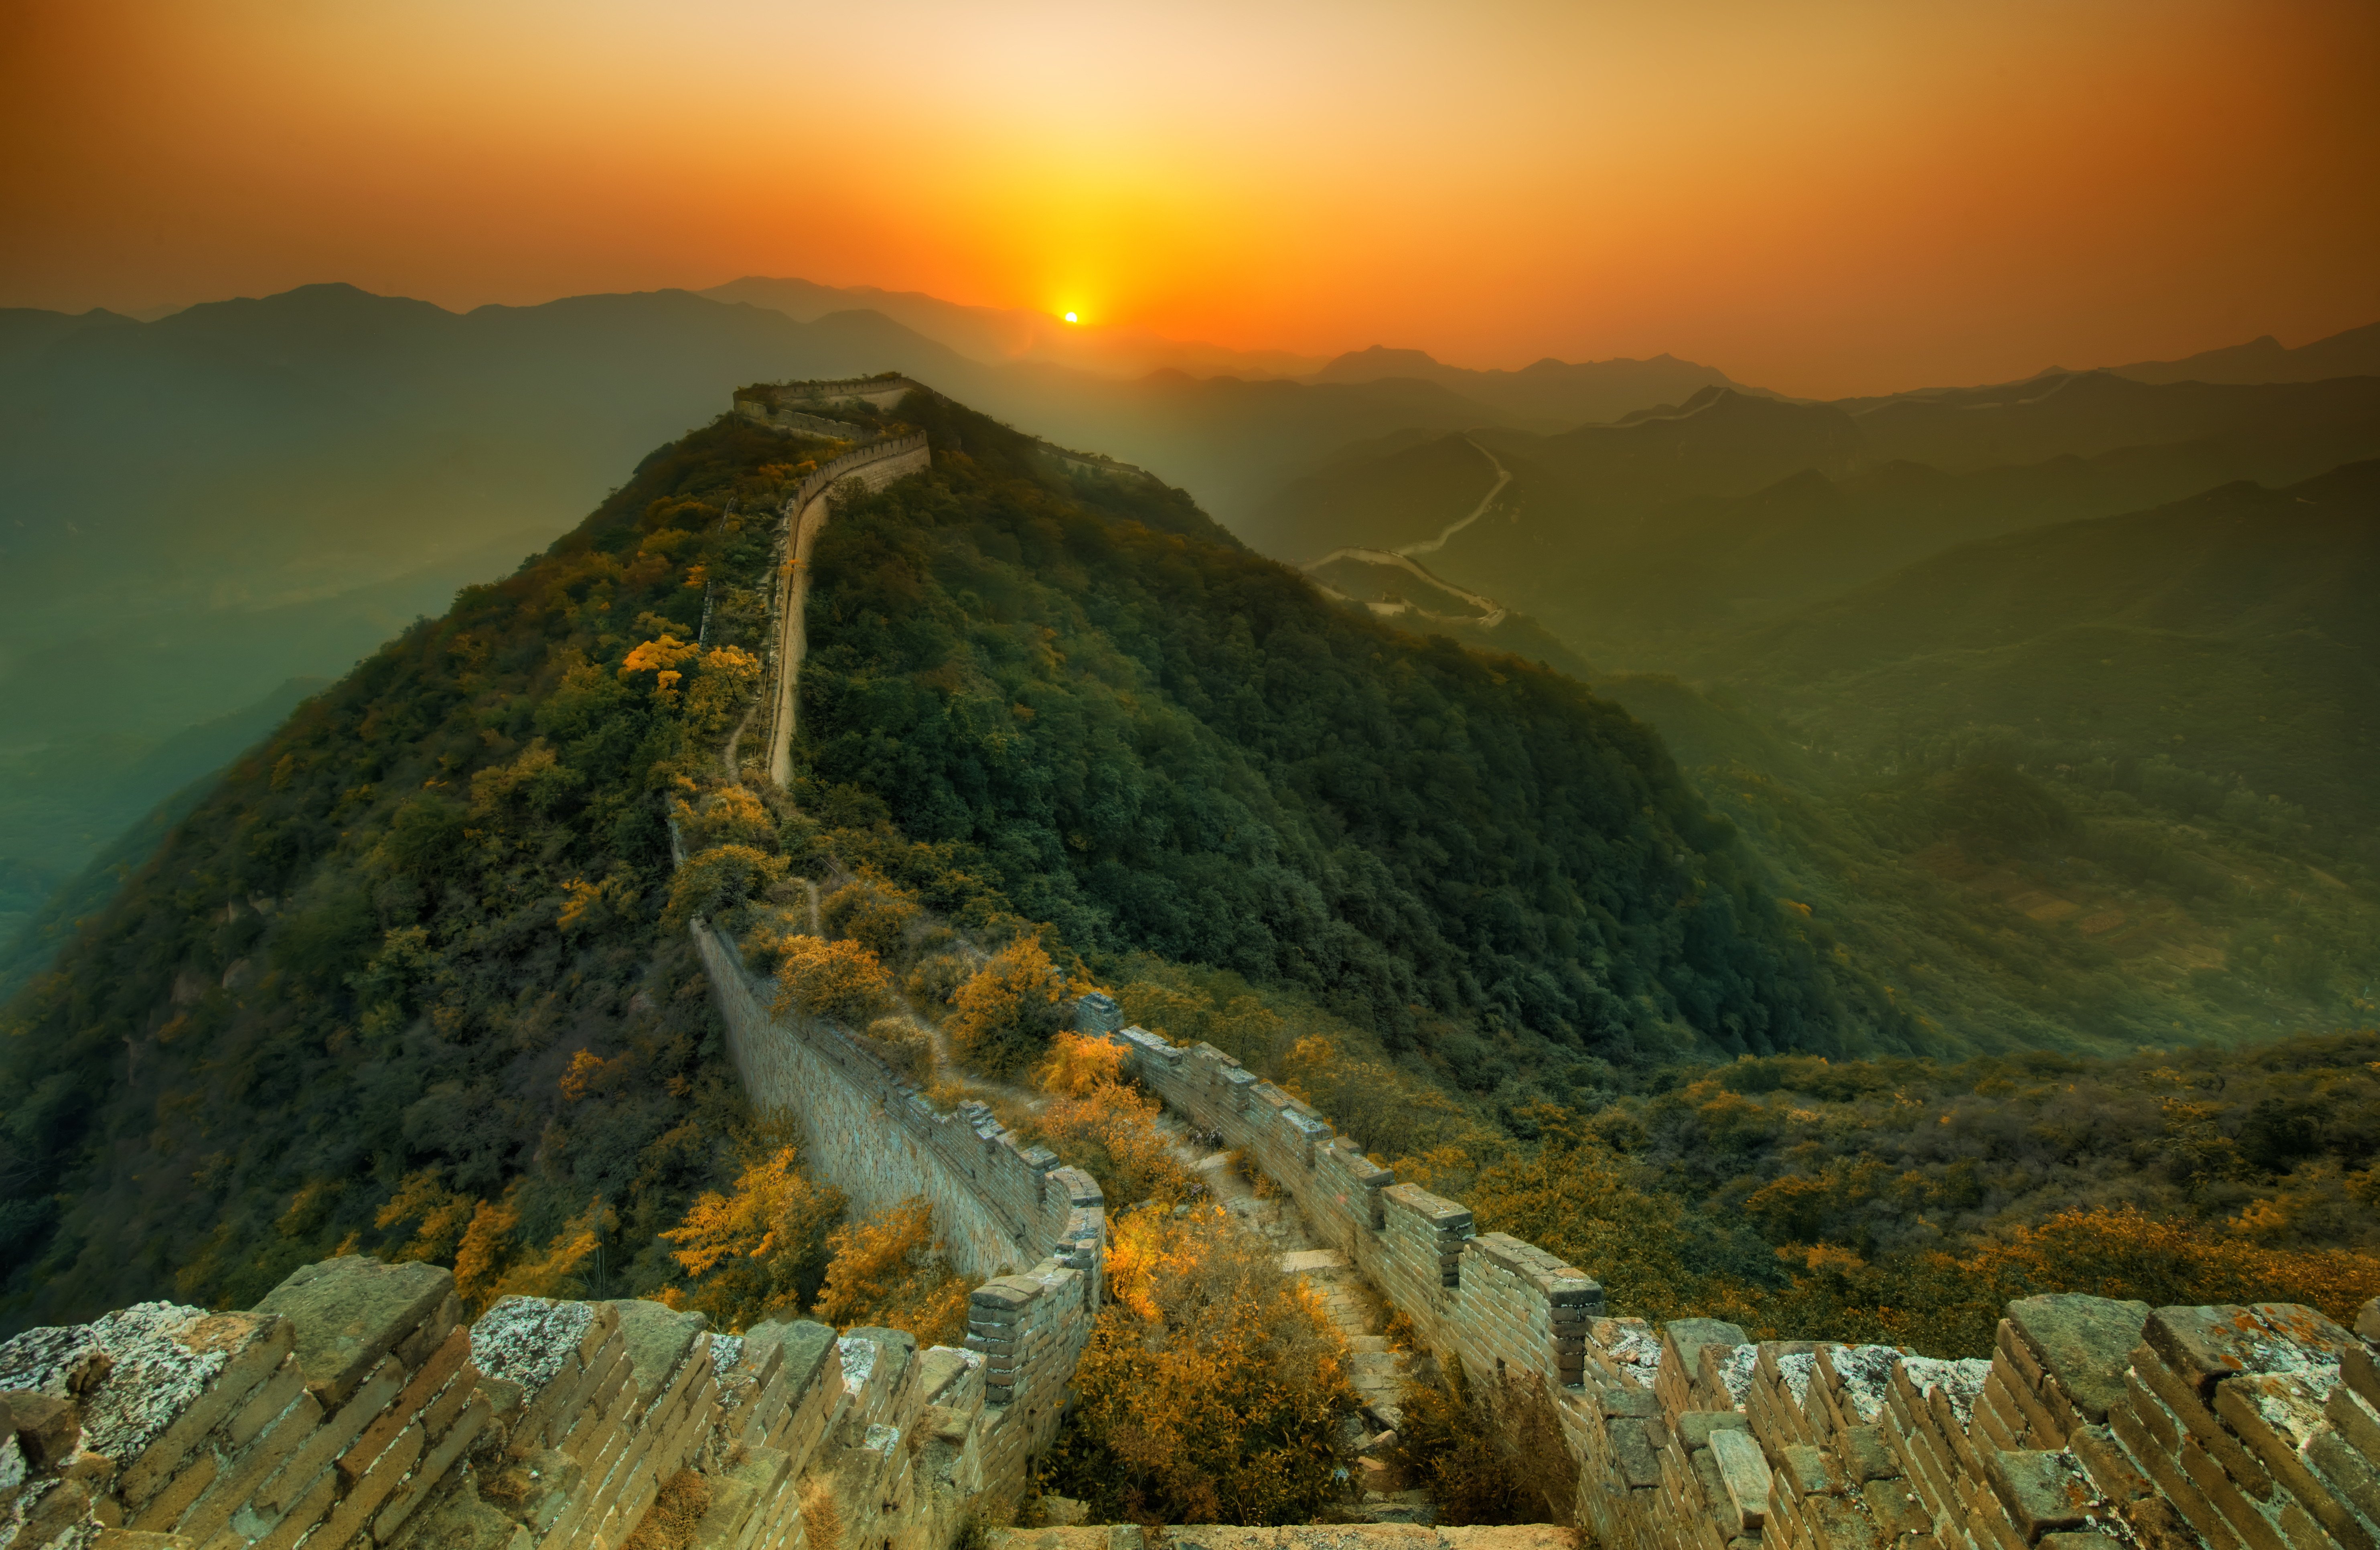 Wallpaper Tembok Hd 56 Great Wall Of China Hd Wallpapers Background Images